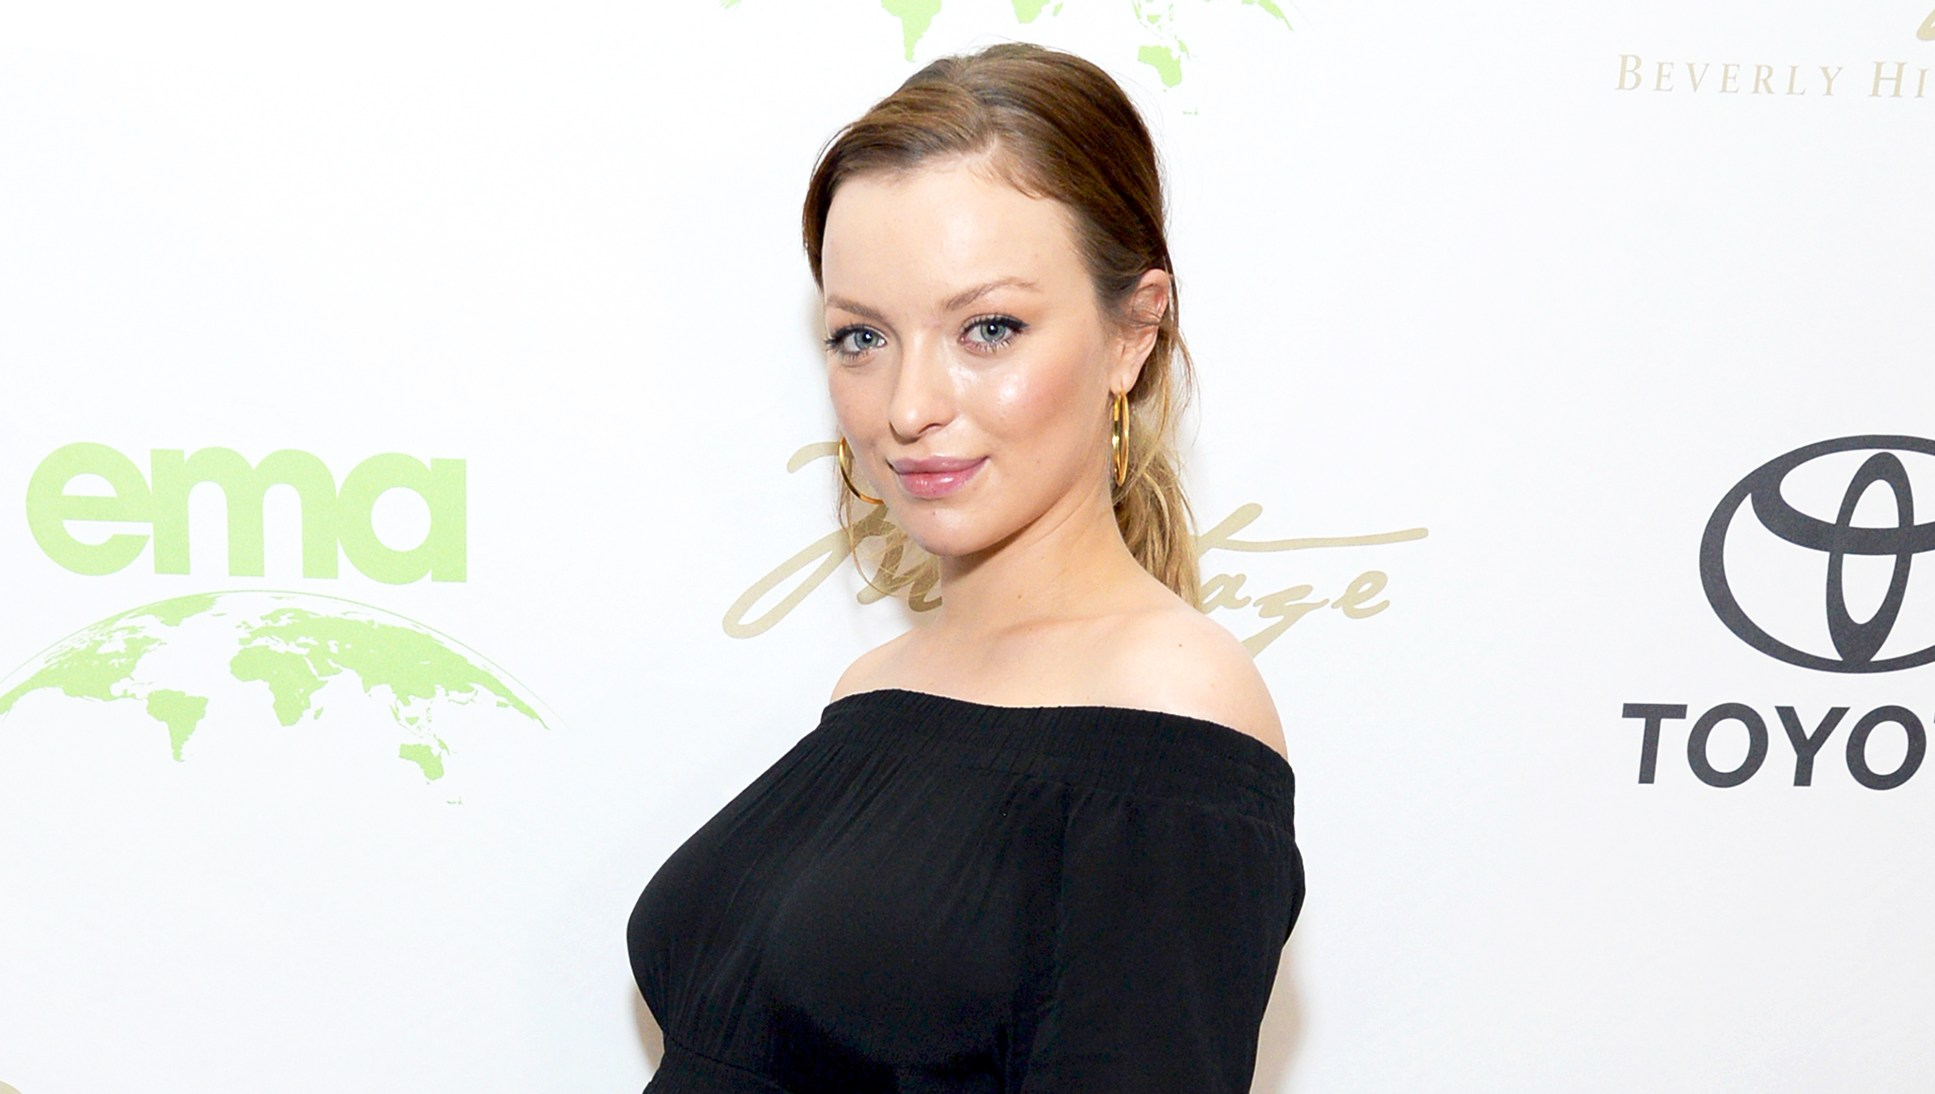 Francesca Eastwood attends the 28th Annual Environmental Media Awards at Montage Beverly Hills on May 22, 2018 in Beverly Hills, California.